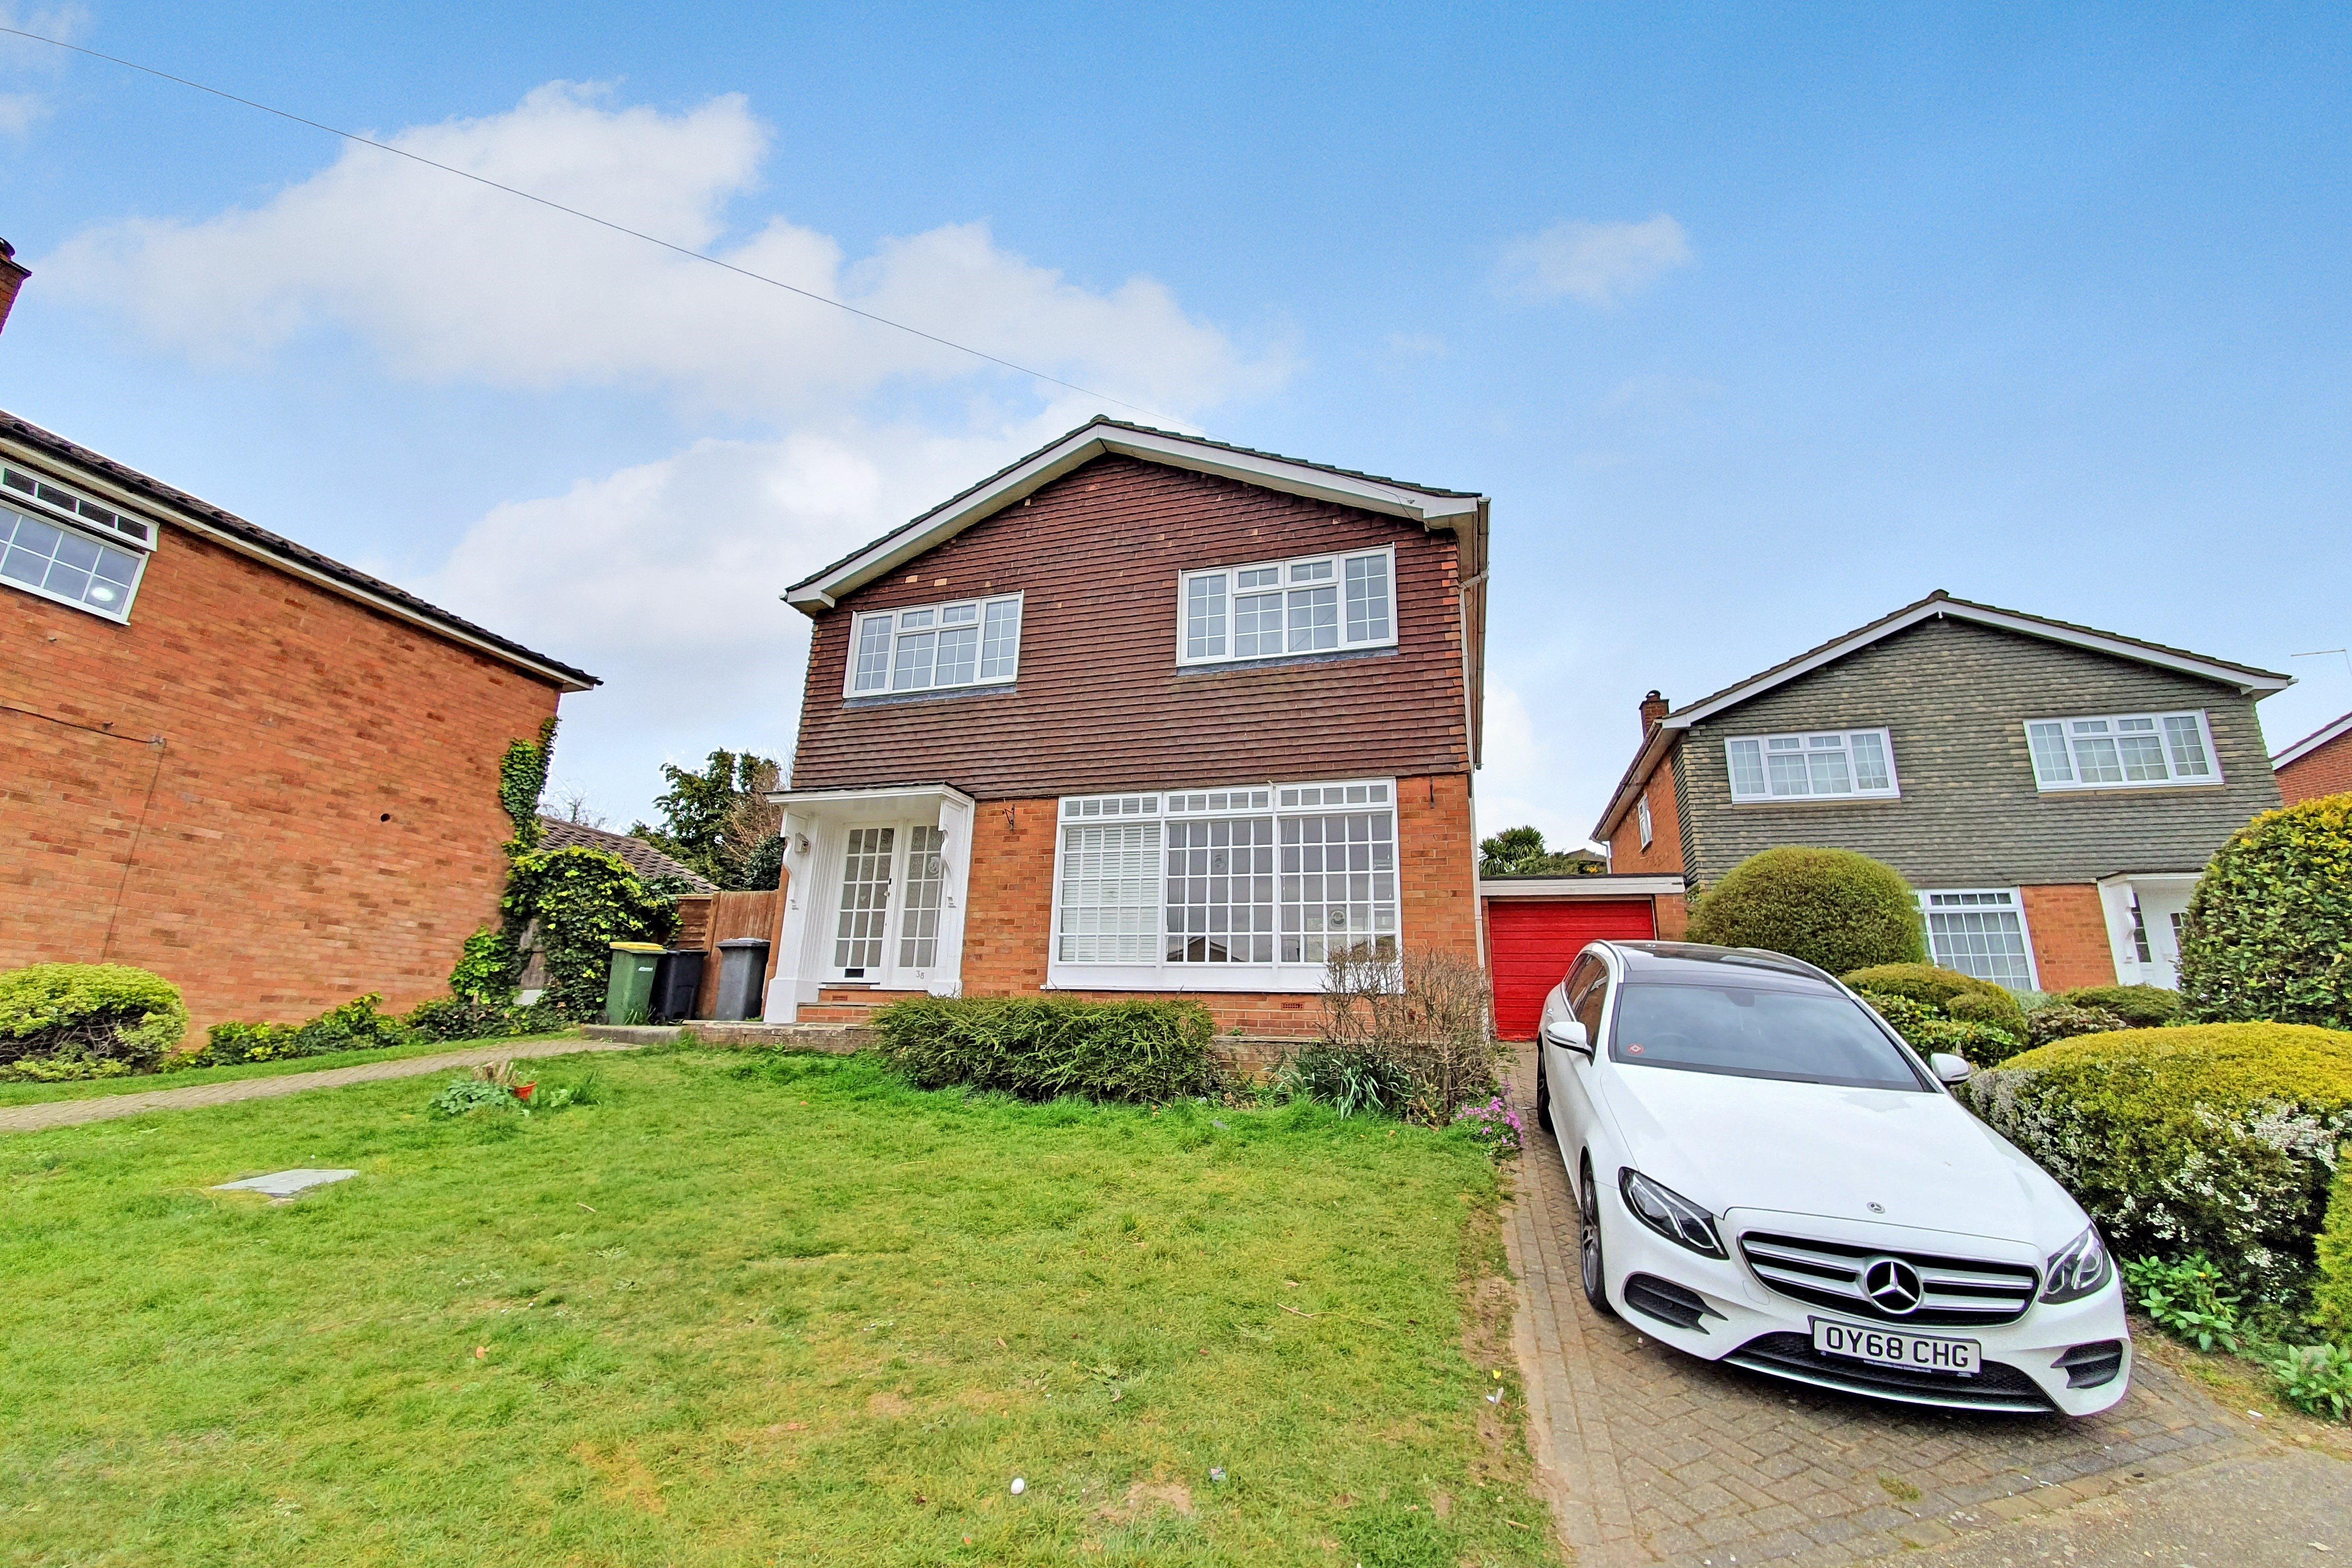 4 bed detached house to rent in Burrows Way, Rayleigh, SS6